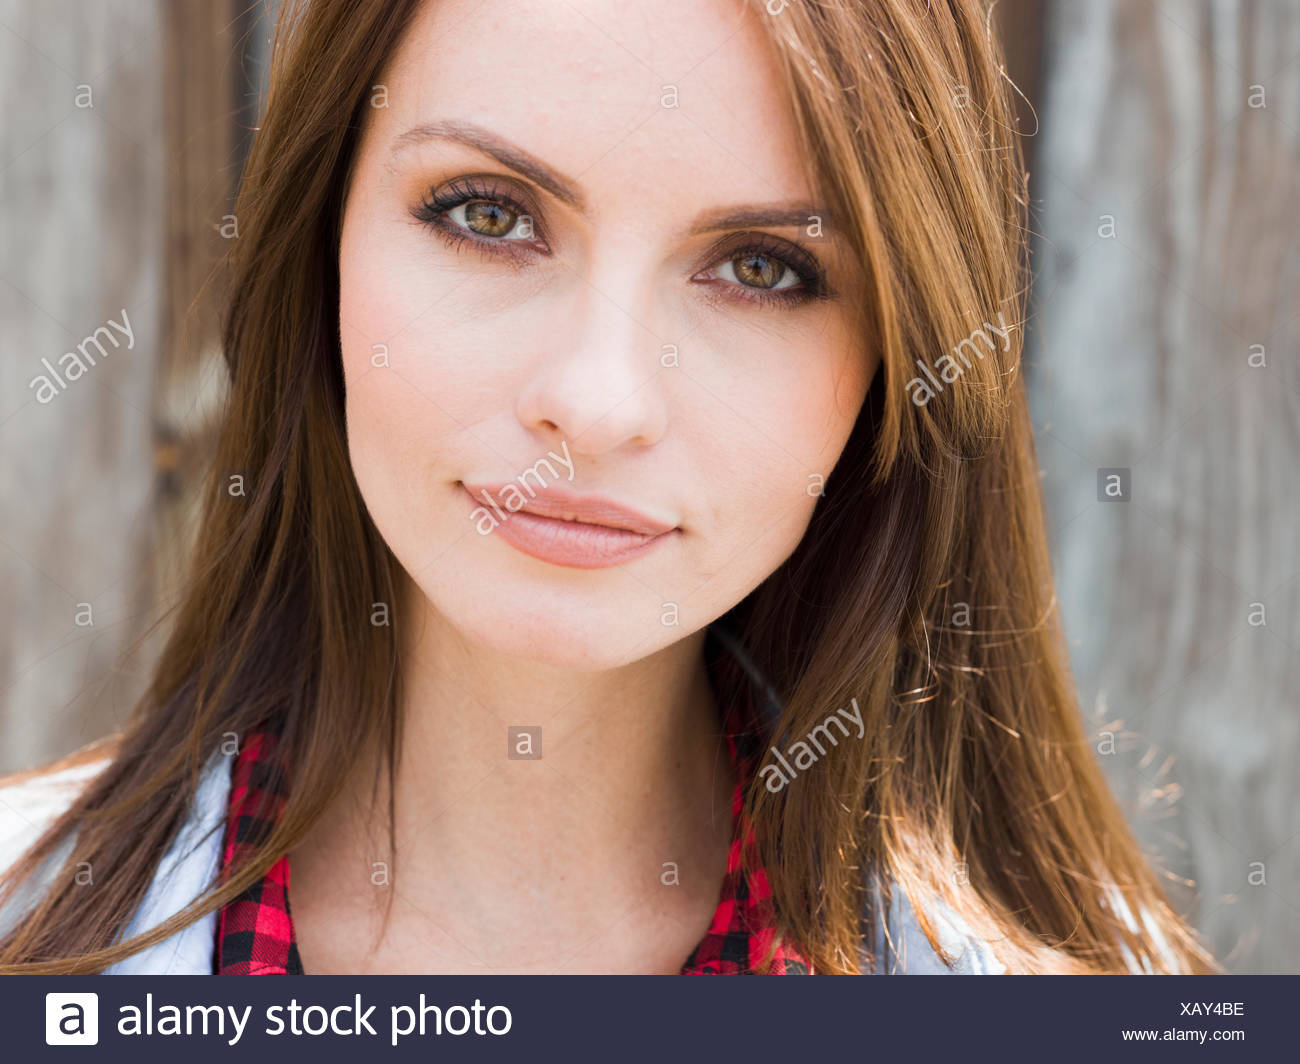 A young woman with brown eyes. - Stock Image